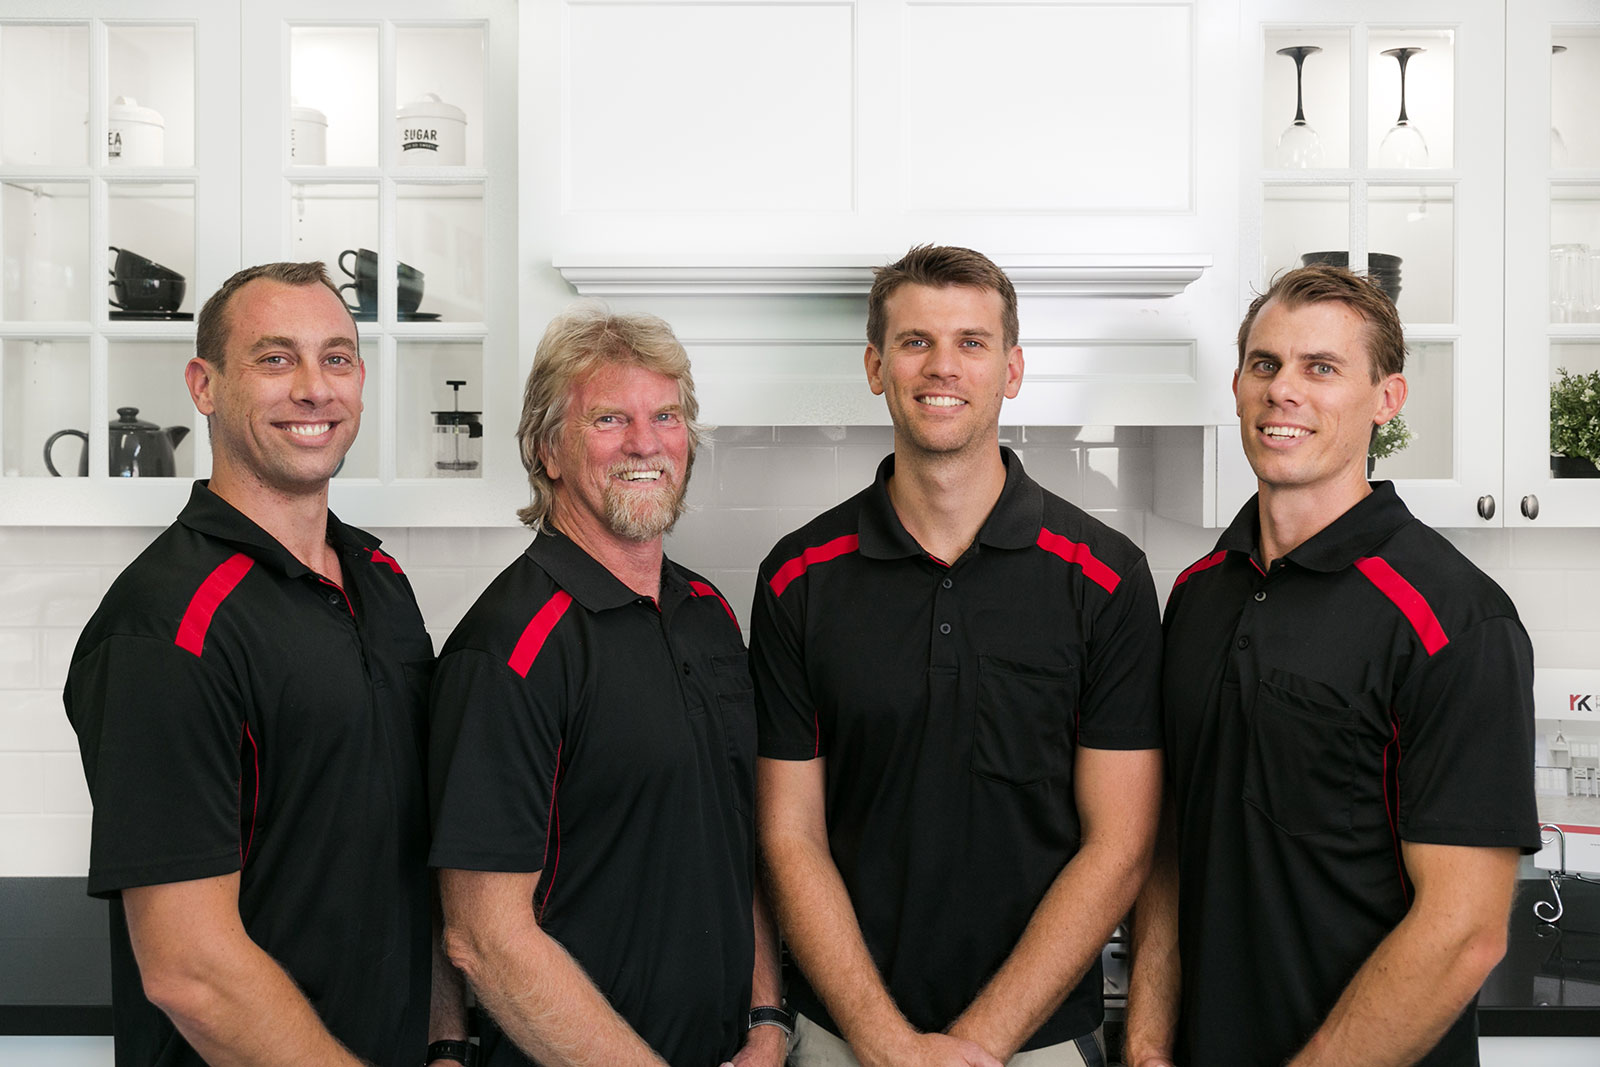 Rod's Kitchens team shot